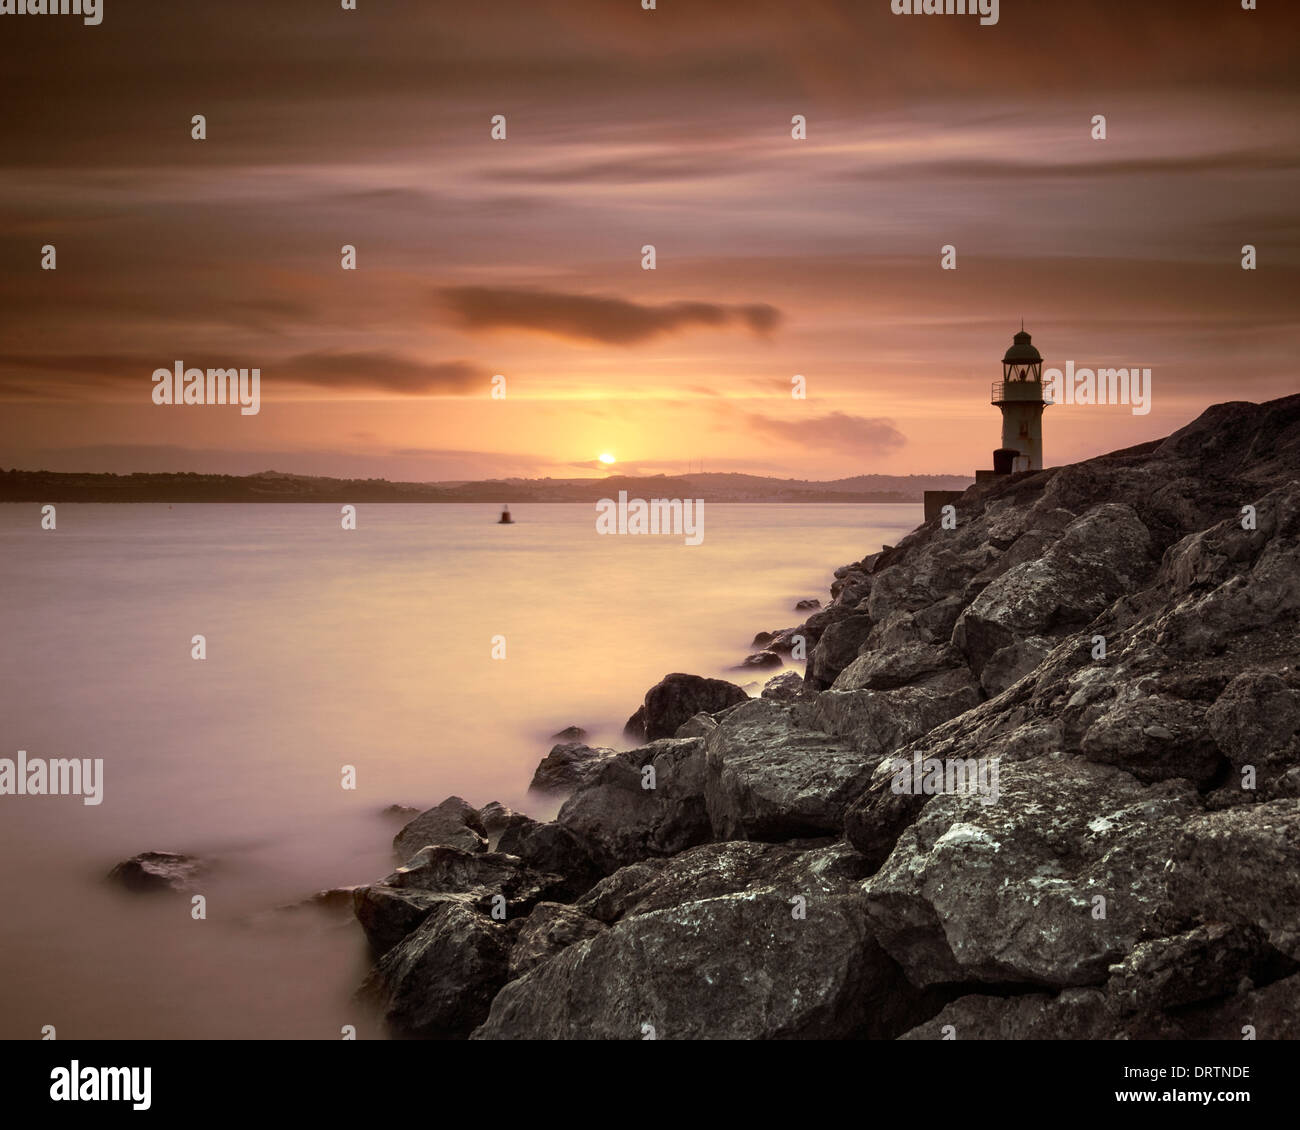 Brixham lighthouse at the end of the breakwater at sunset. - Stock Image